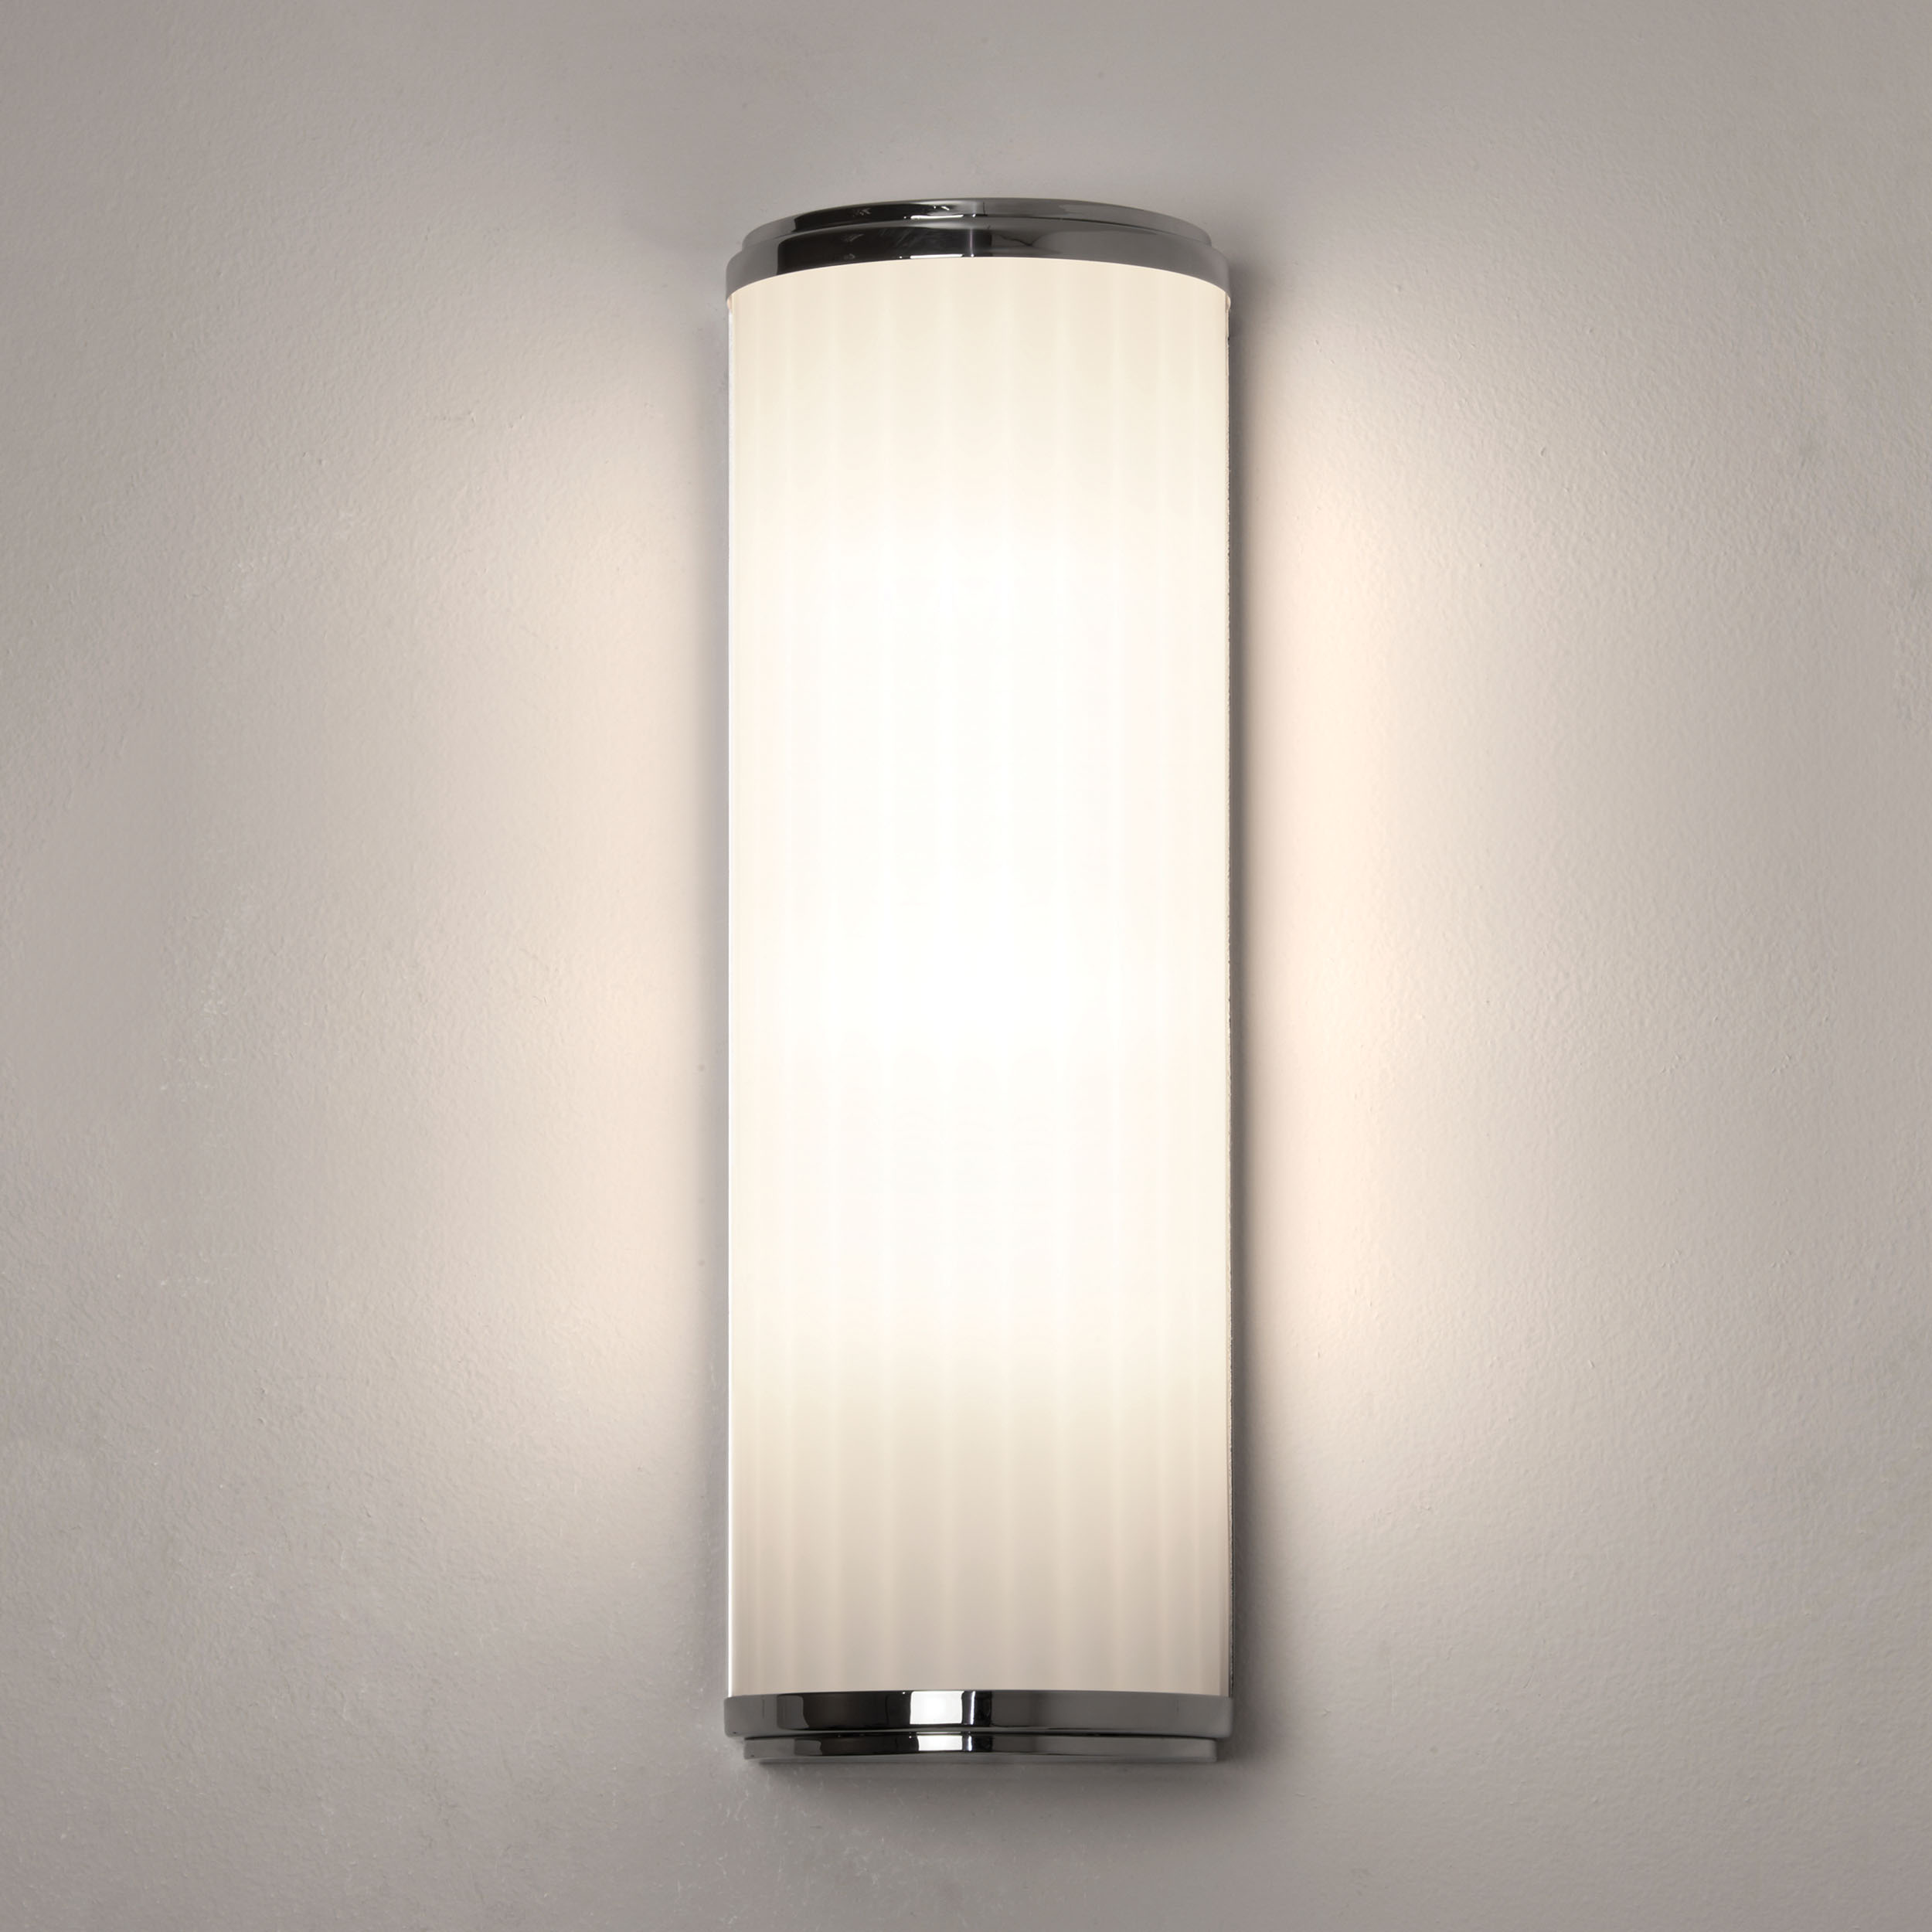 ASTRO MONZA 400 6.4W LED IP44 bathroom wall mirror light polished chrome glass Thumbnail 1